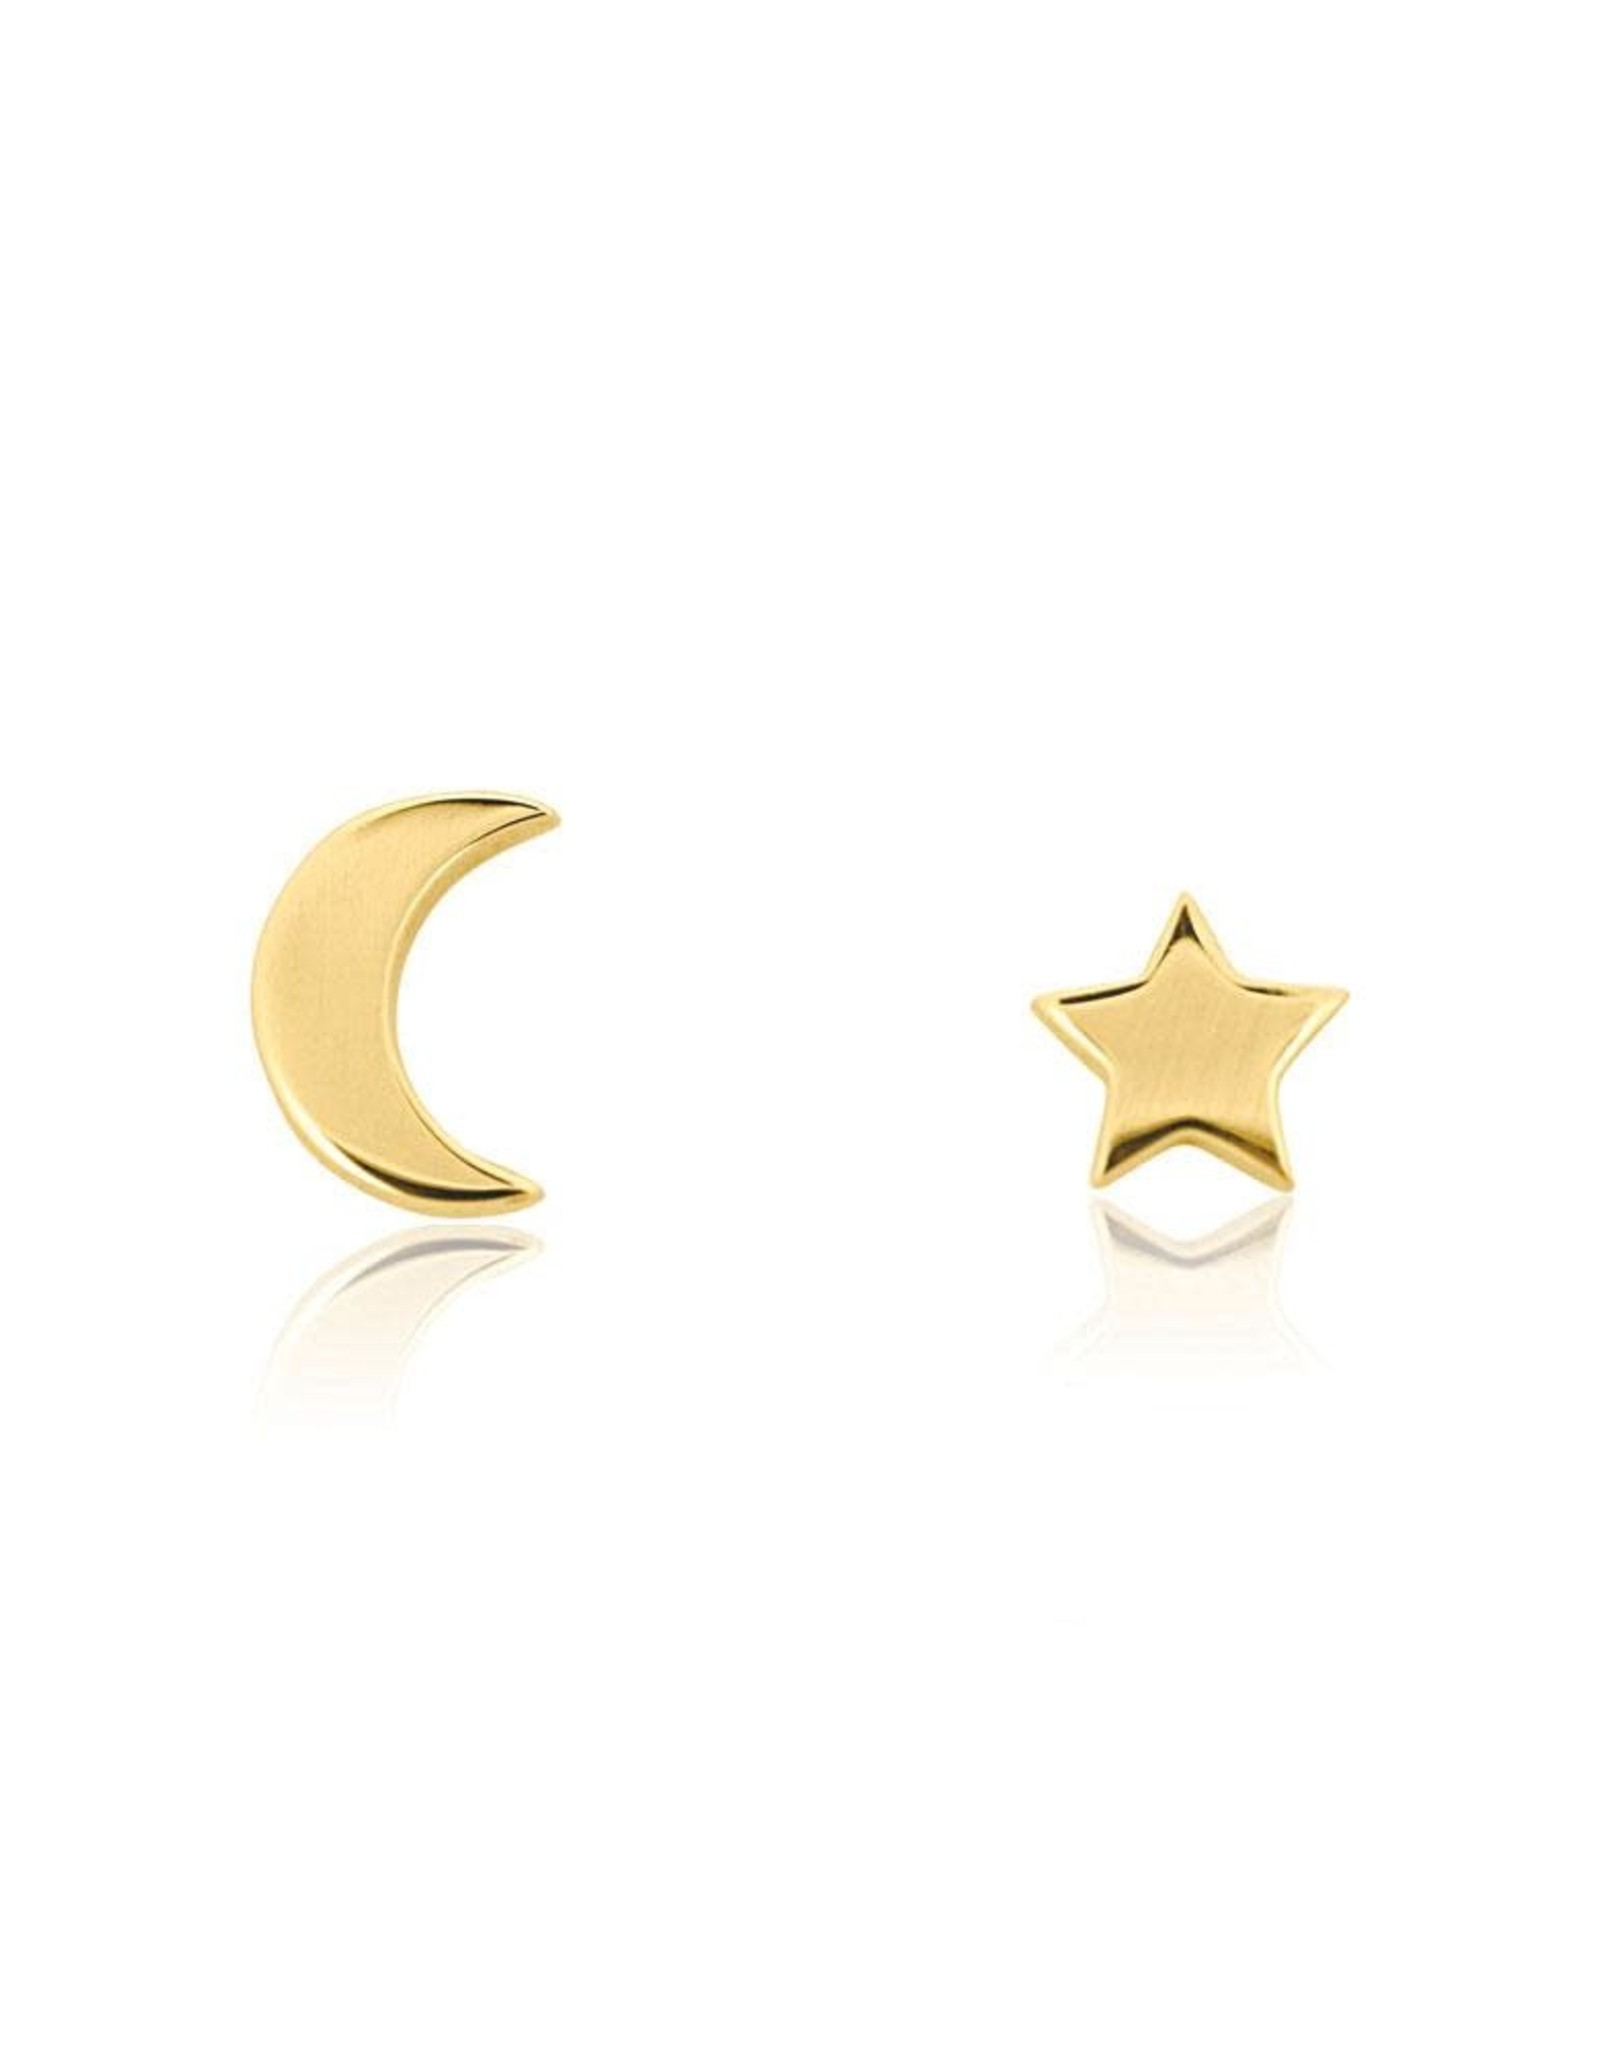 Star & Moon Stud Earrings. Gold